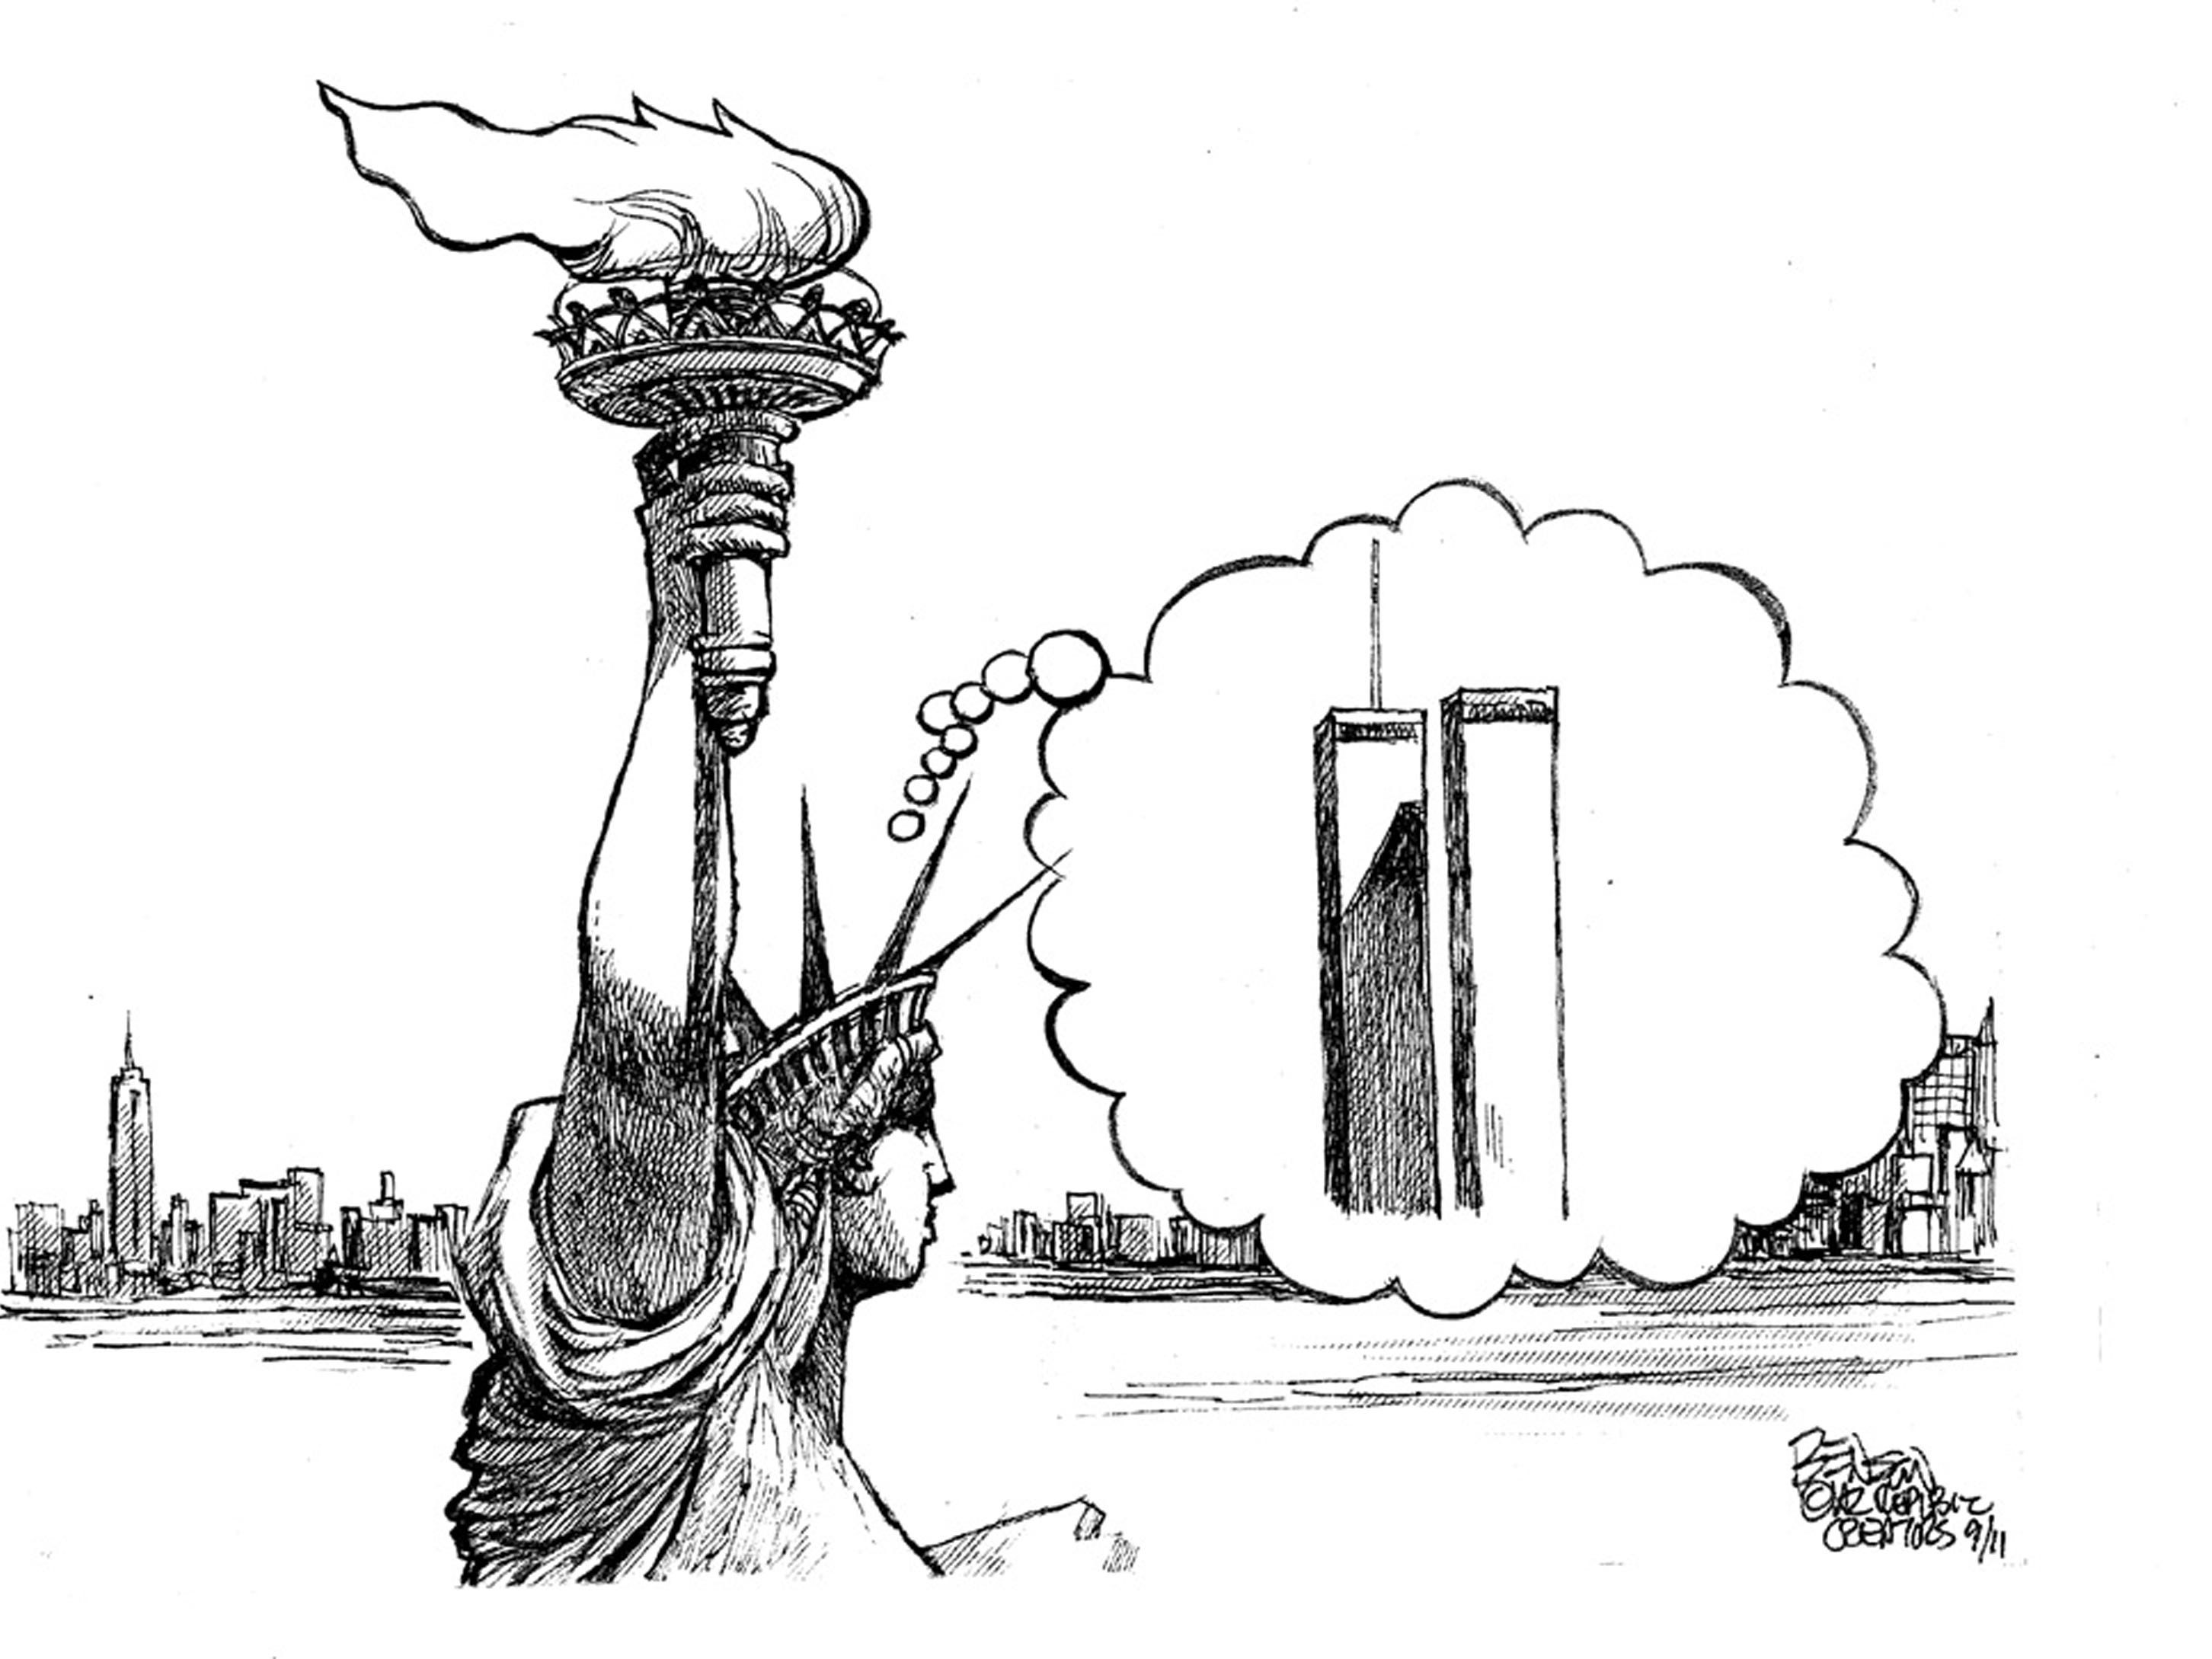 First published for Sept. 11, 2011. The cartoonist's homepage, azcentral.com/opinions/benson